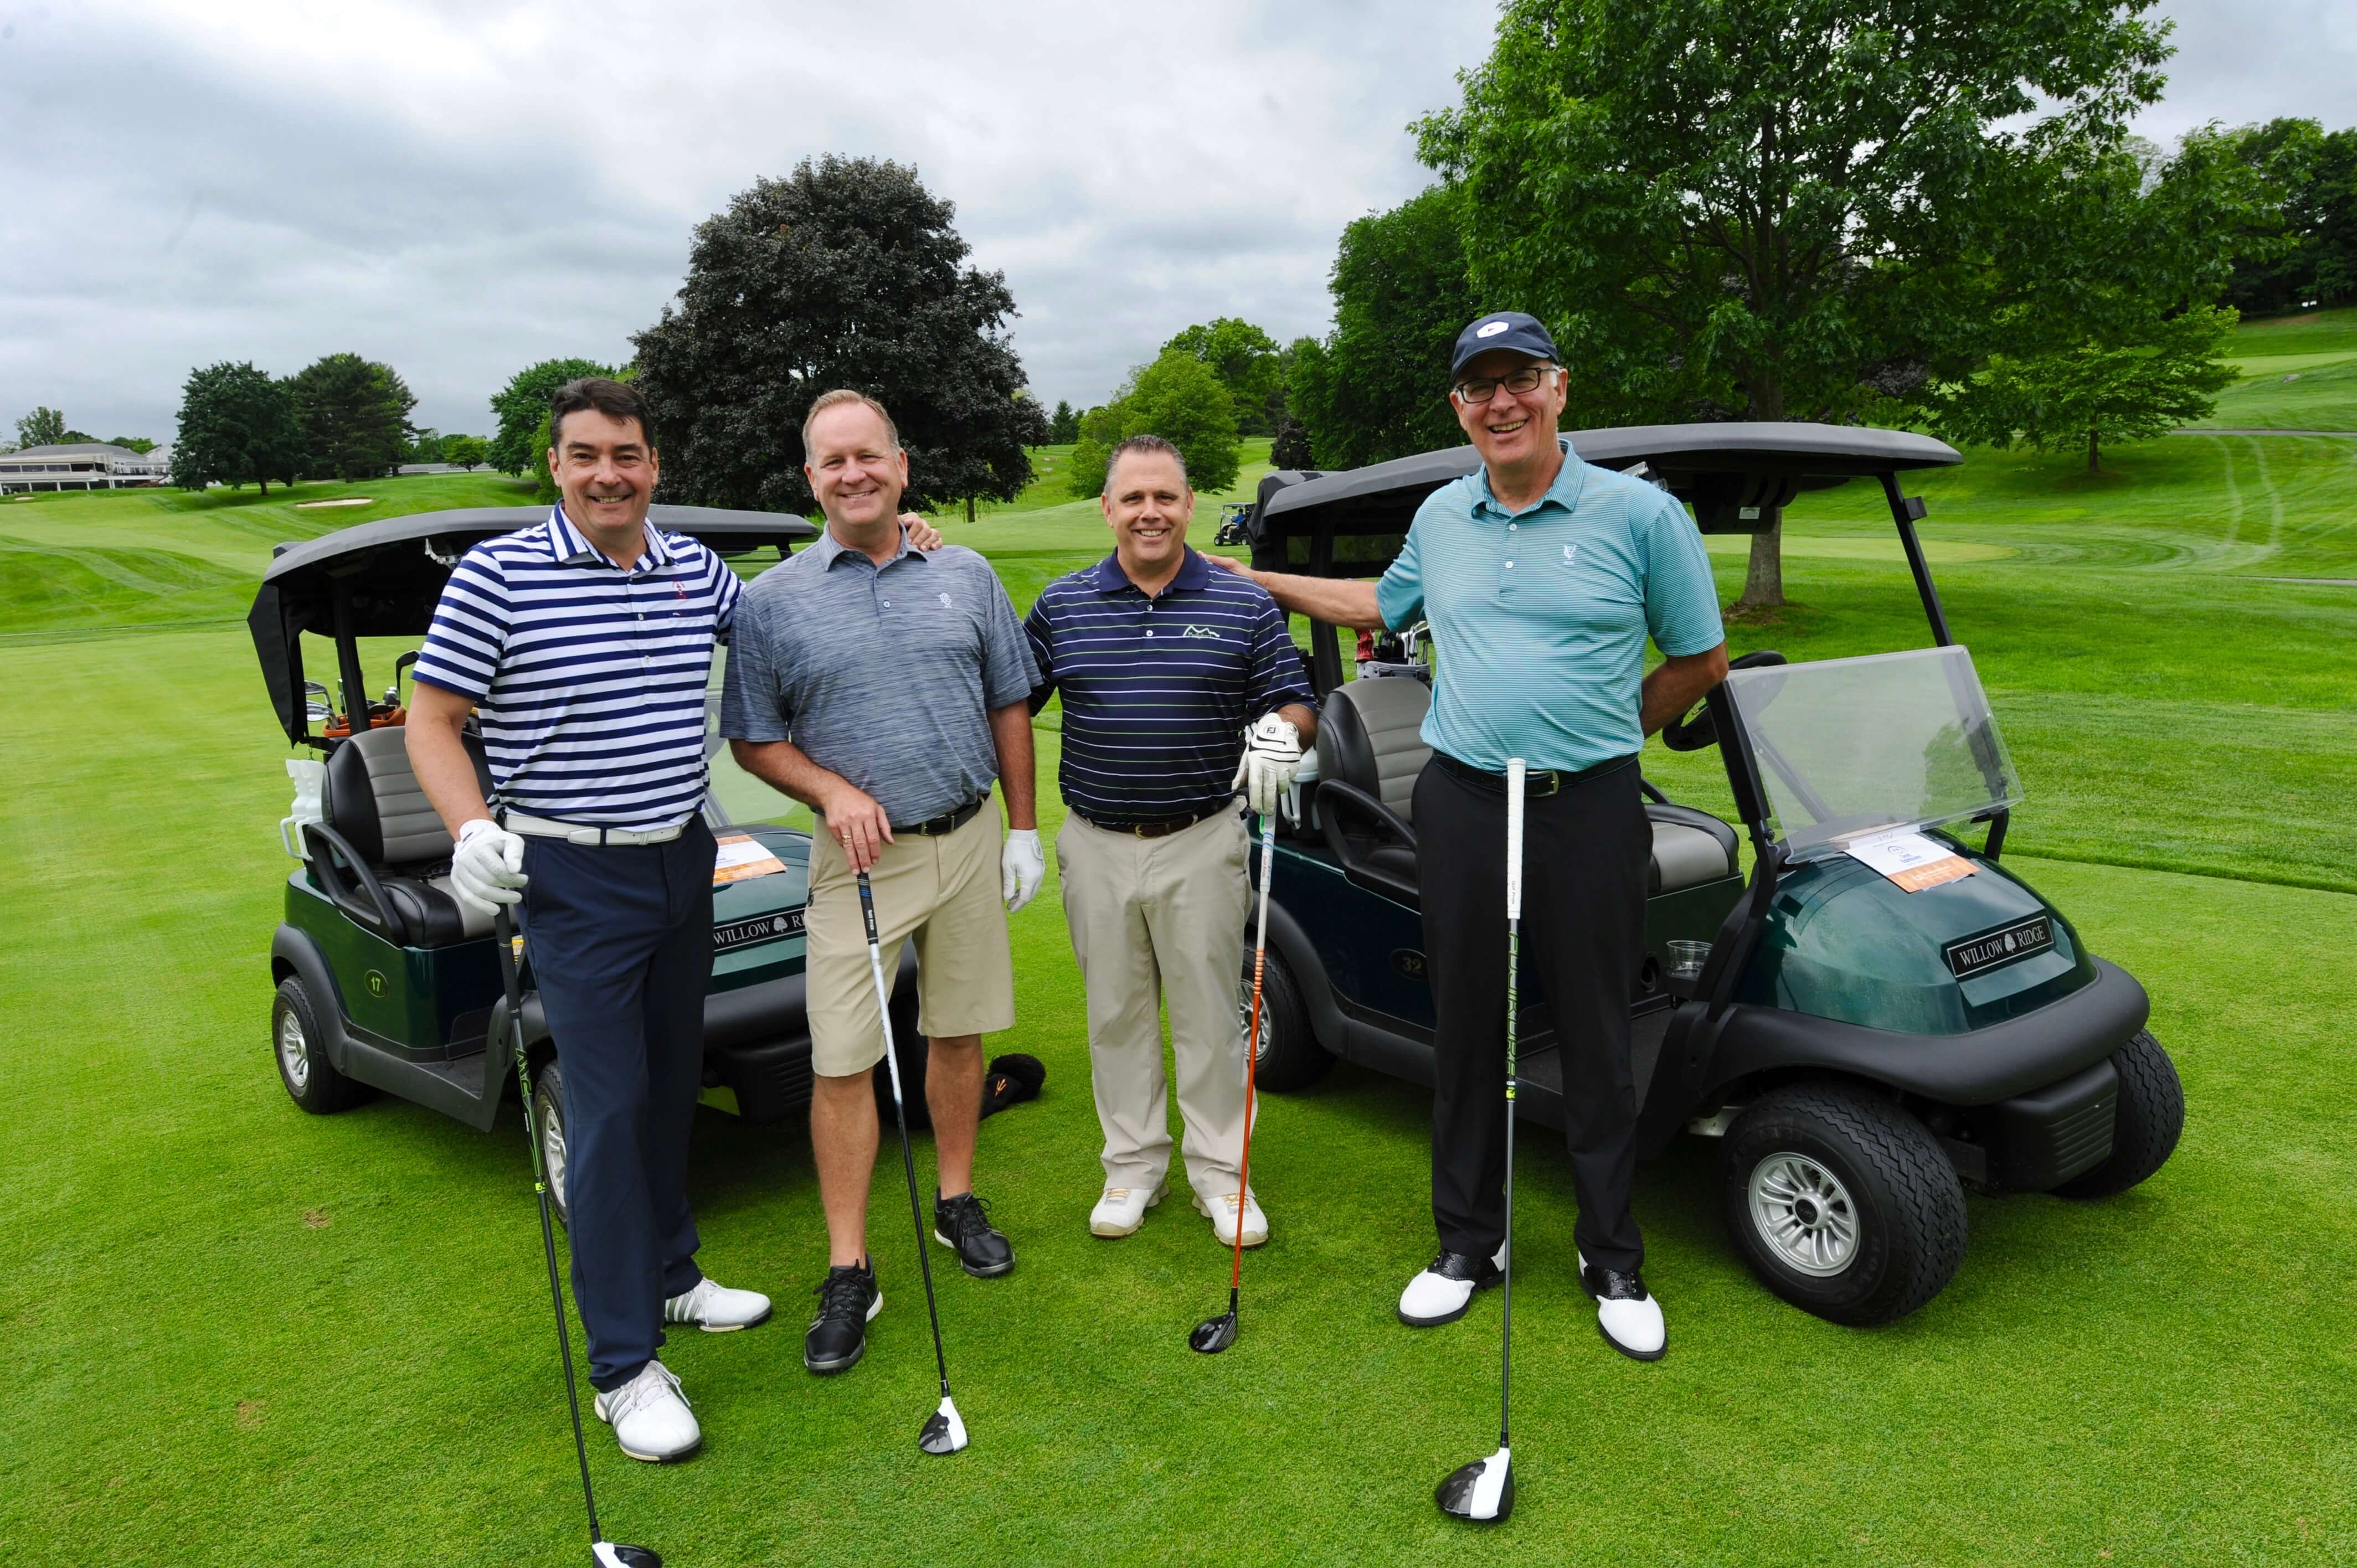 Golf Championship winning team from Brasseler USA: Ken Frain, Colan Rogers, Bill Eisenhauer and Steve Sloane.